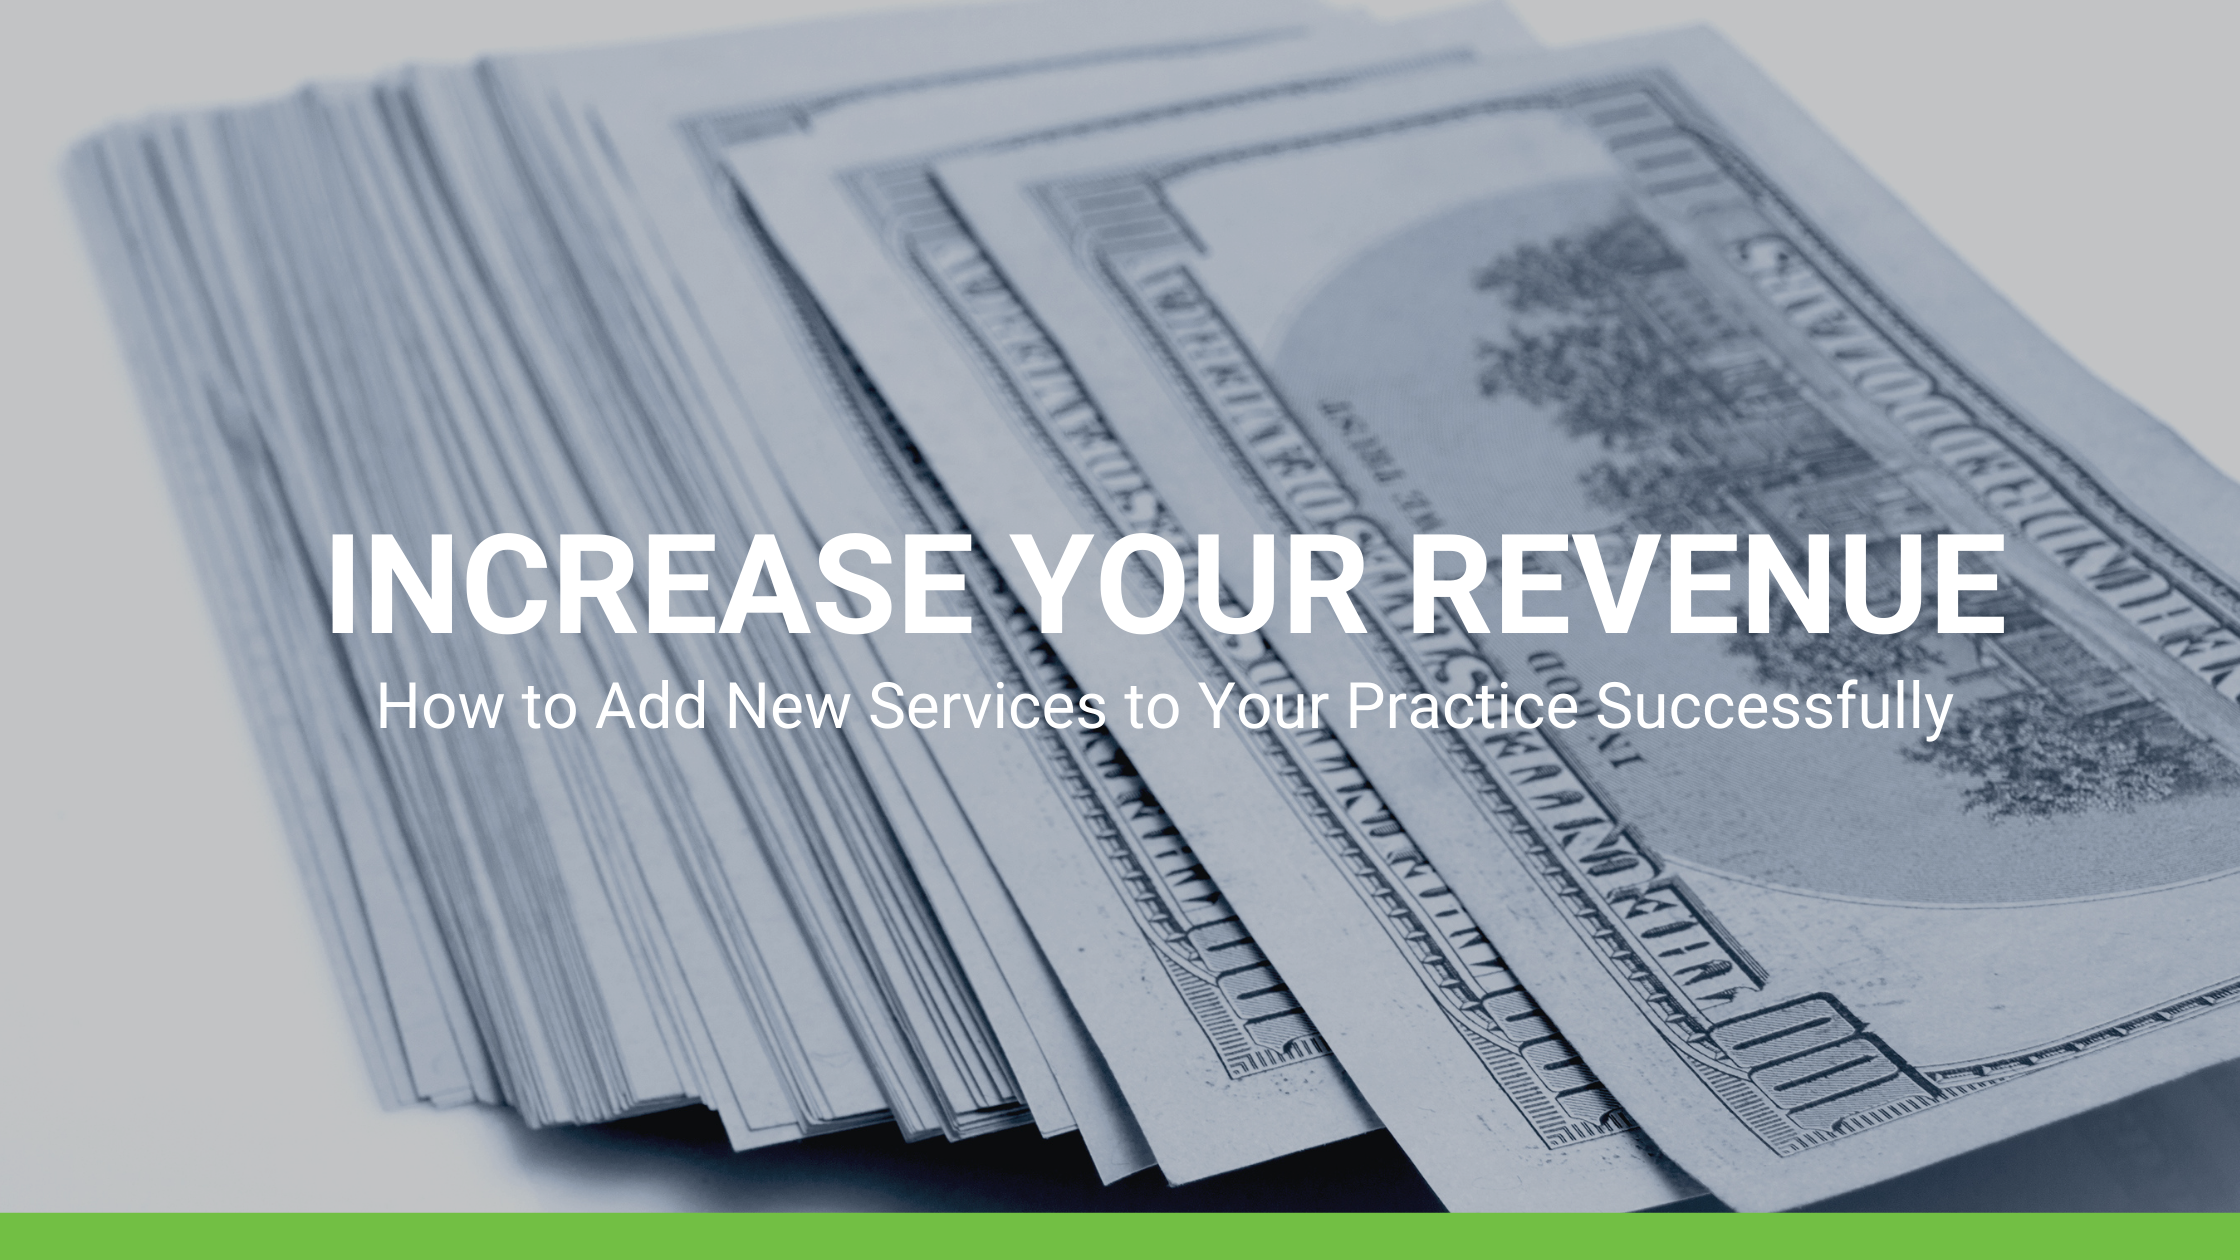 Increase Your Revenue: How to Add New Services to Your Practice Successfully